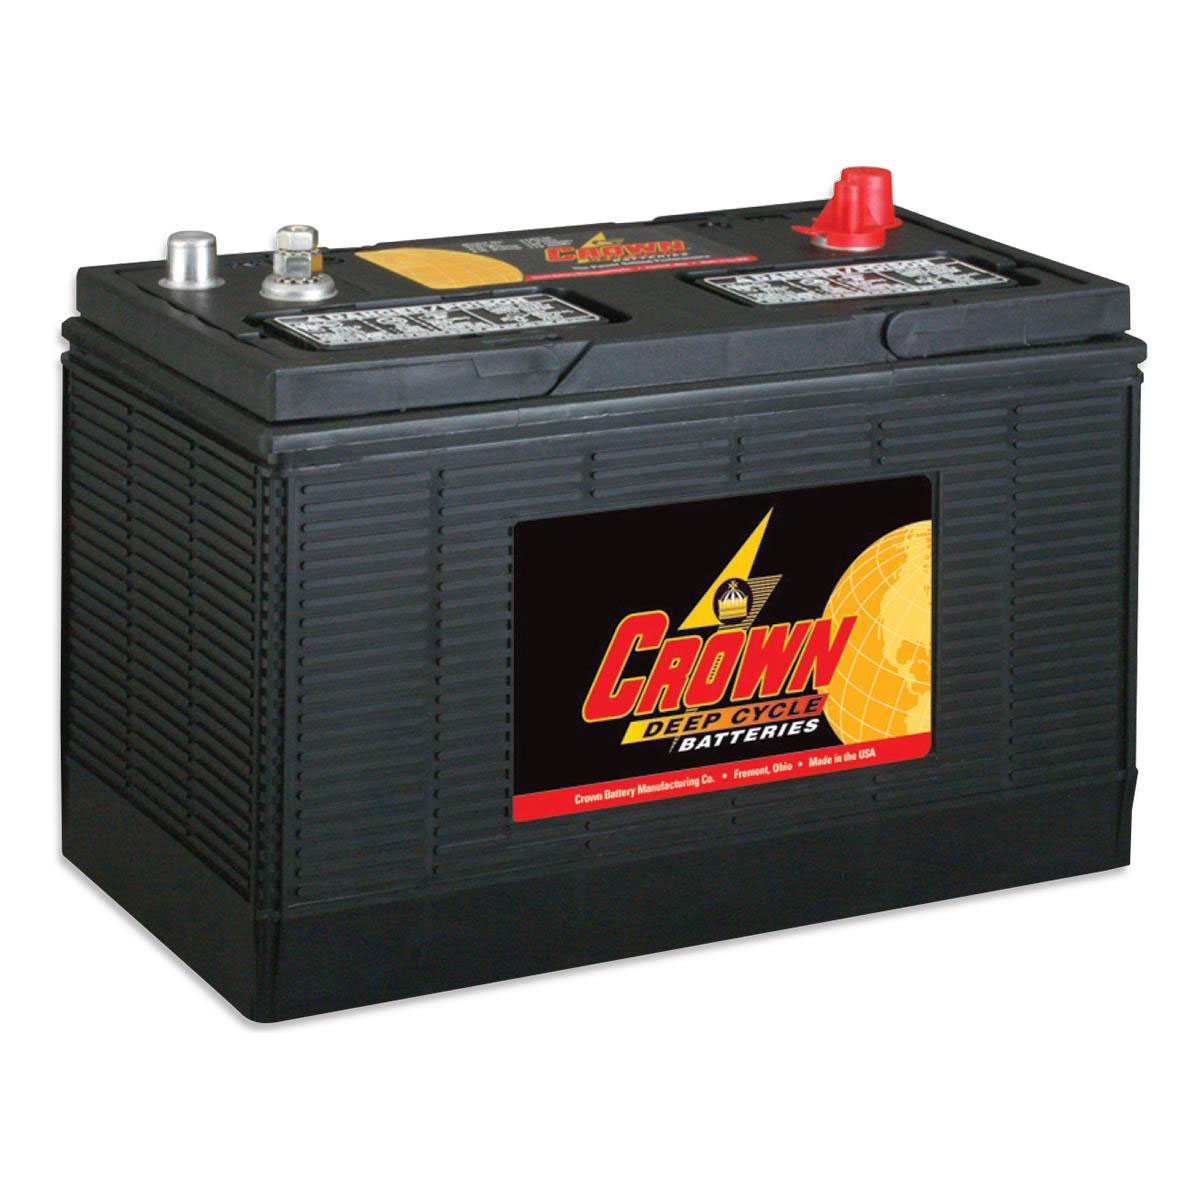 Crow-Deep-Cycle-Battery.jpg